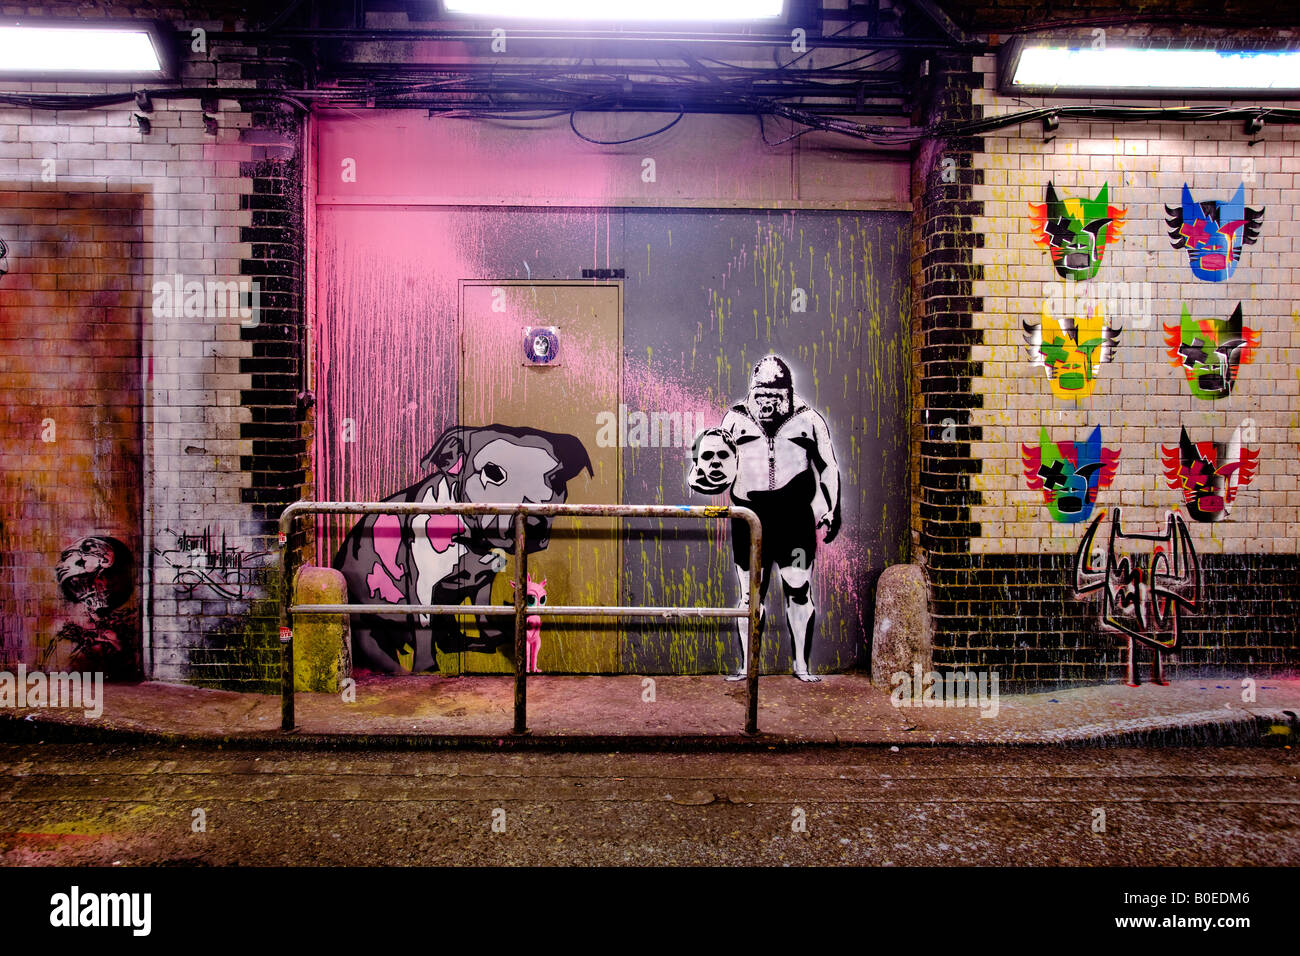 The Cans Festival - stencil art in a disused road tunnel in Waterloo, south London - Stock Image